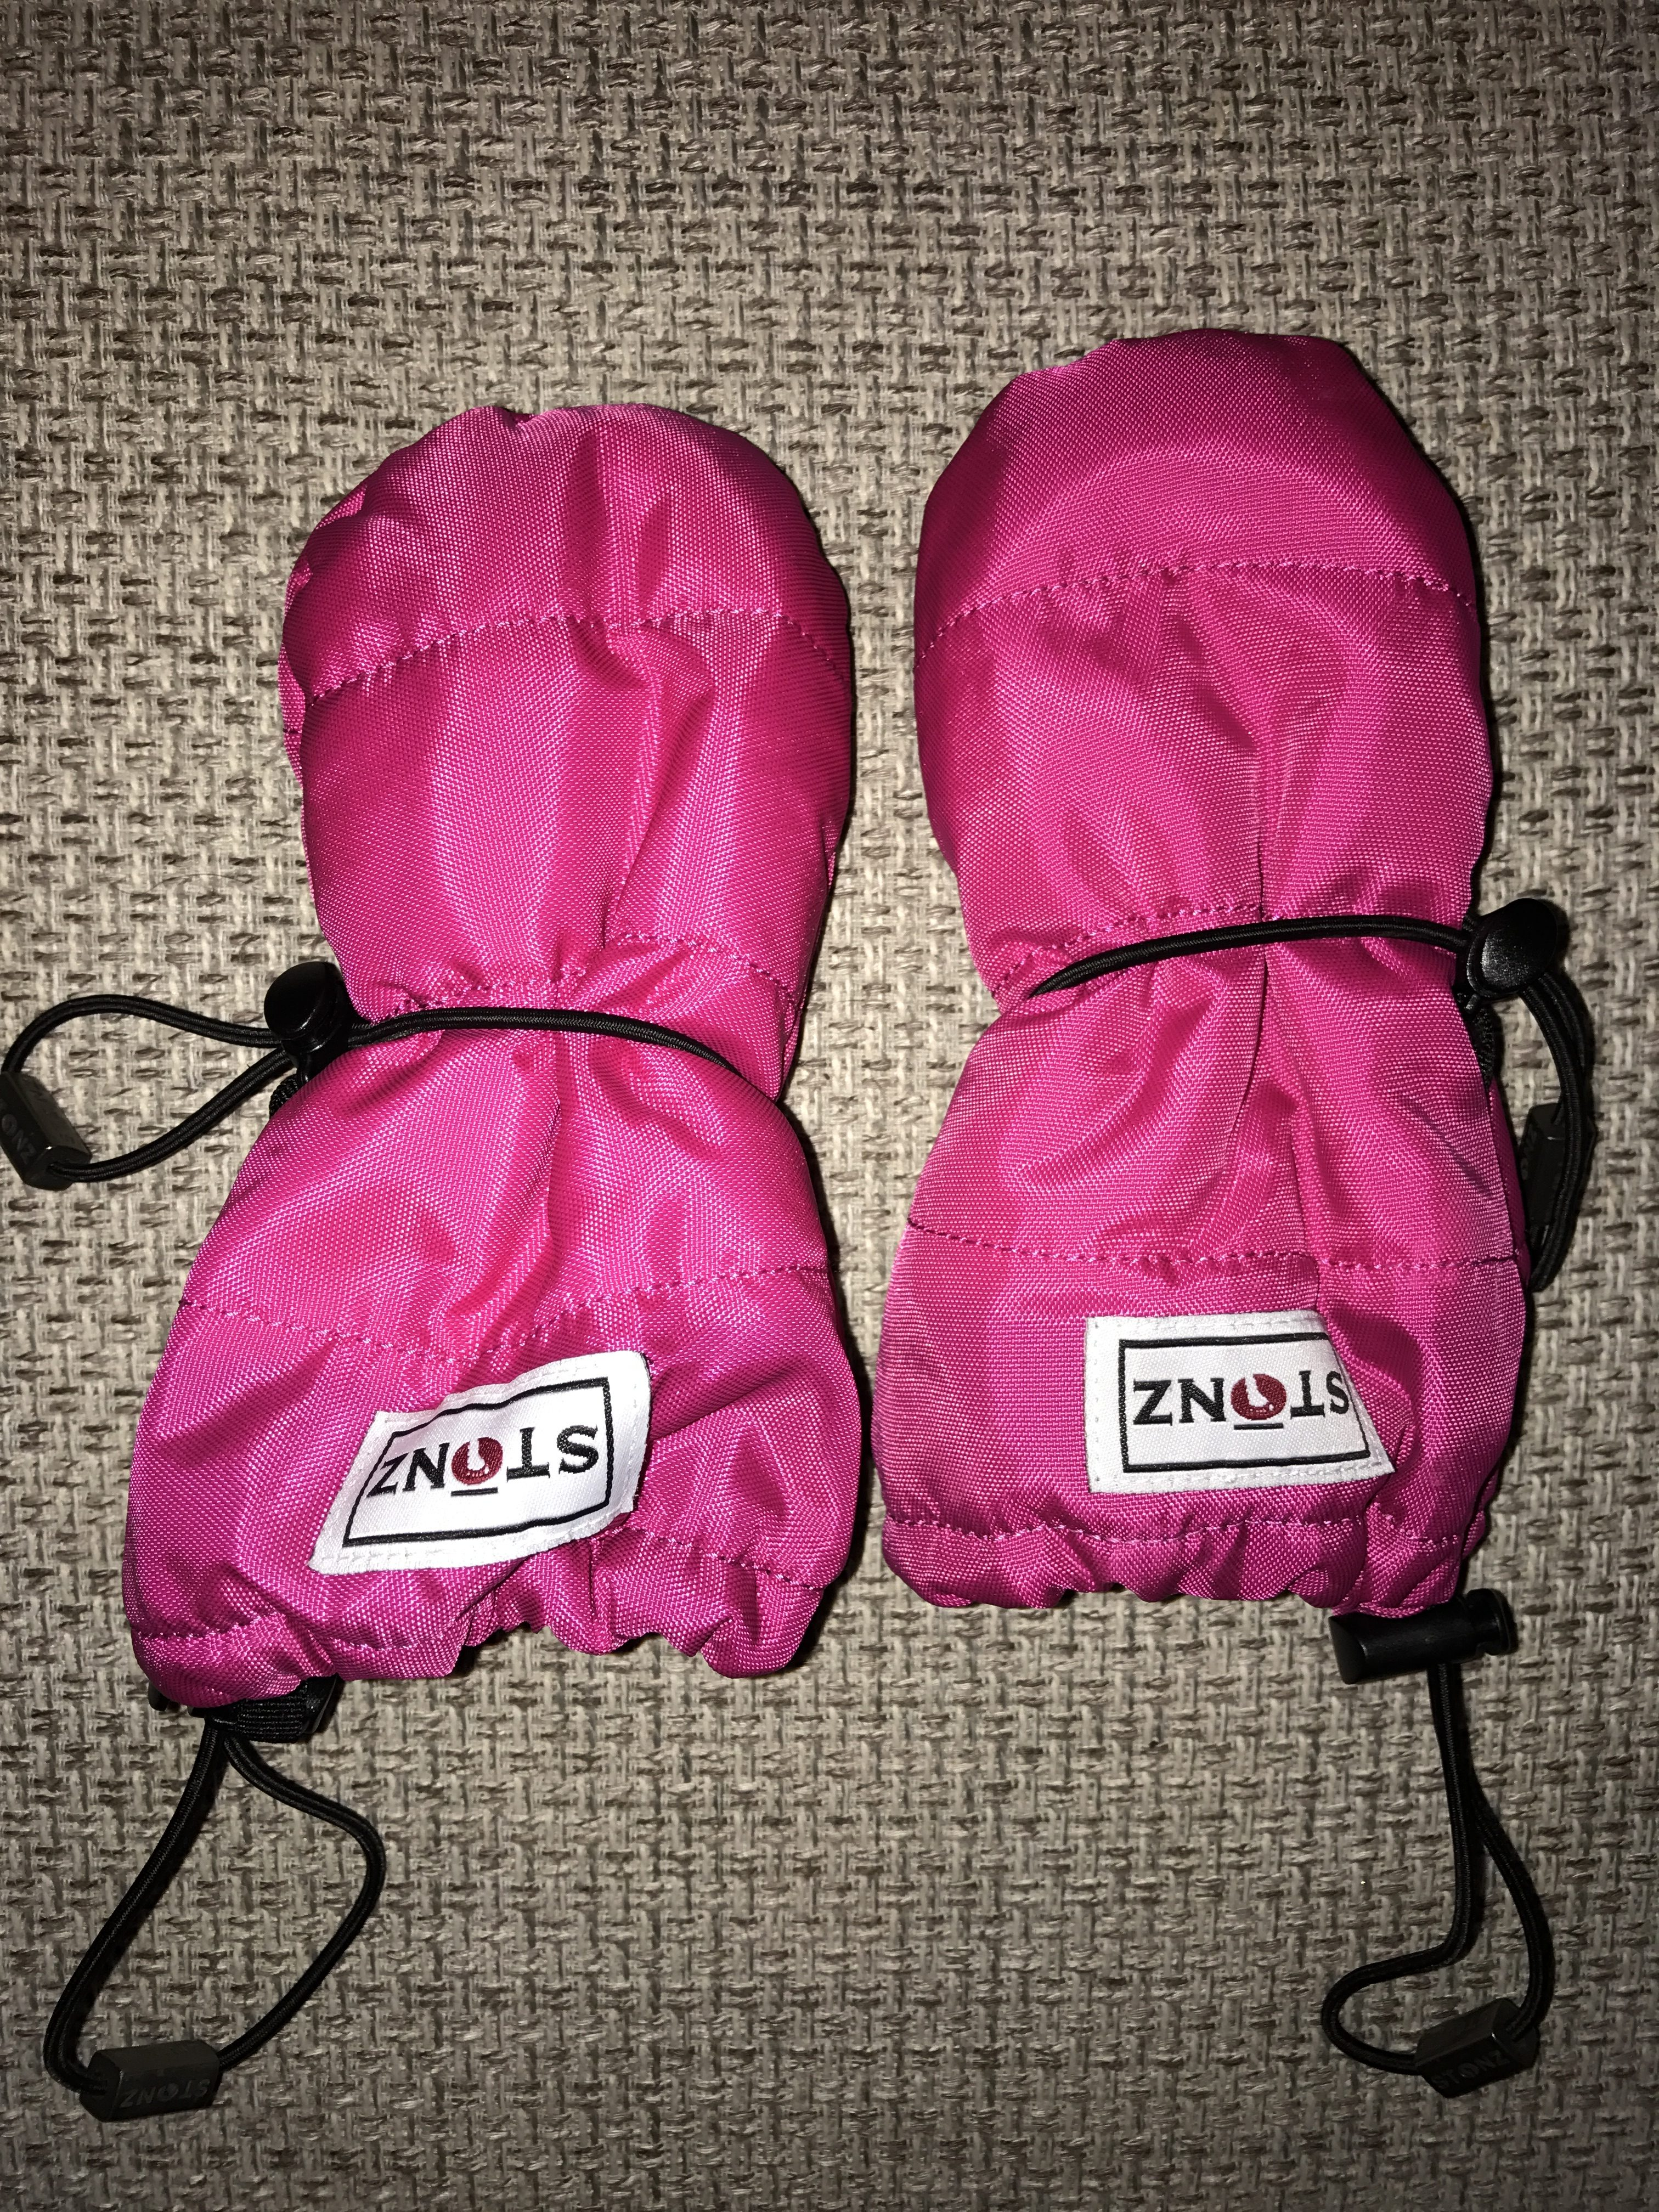 ae81dfa8b Stonz Mittz Review - Water and wind resistant baby gloves that stay ...